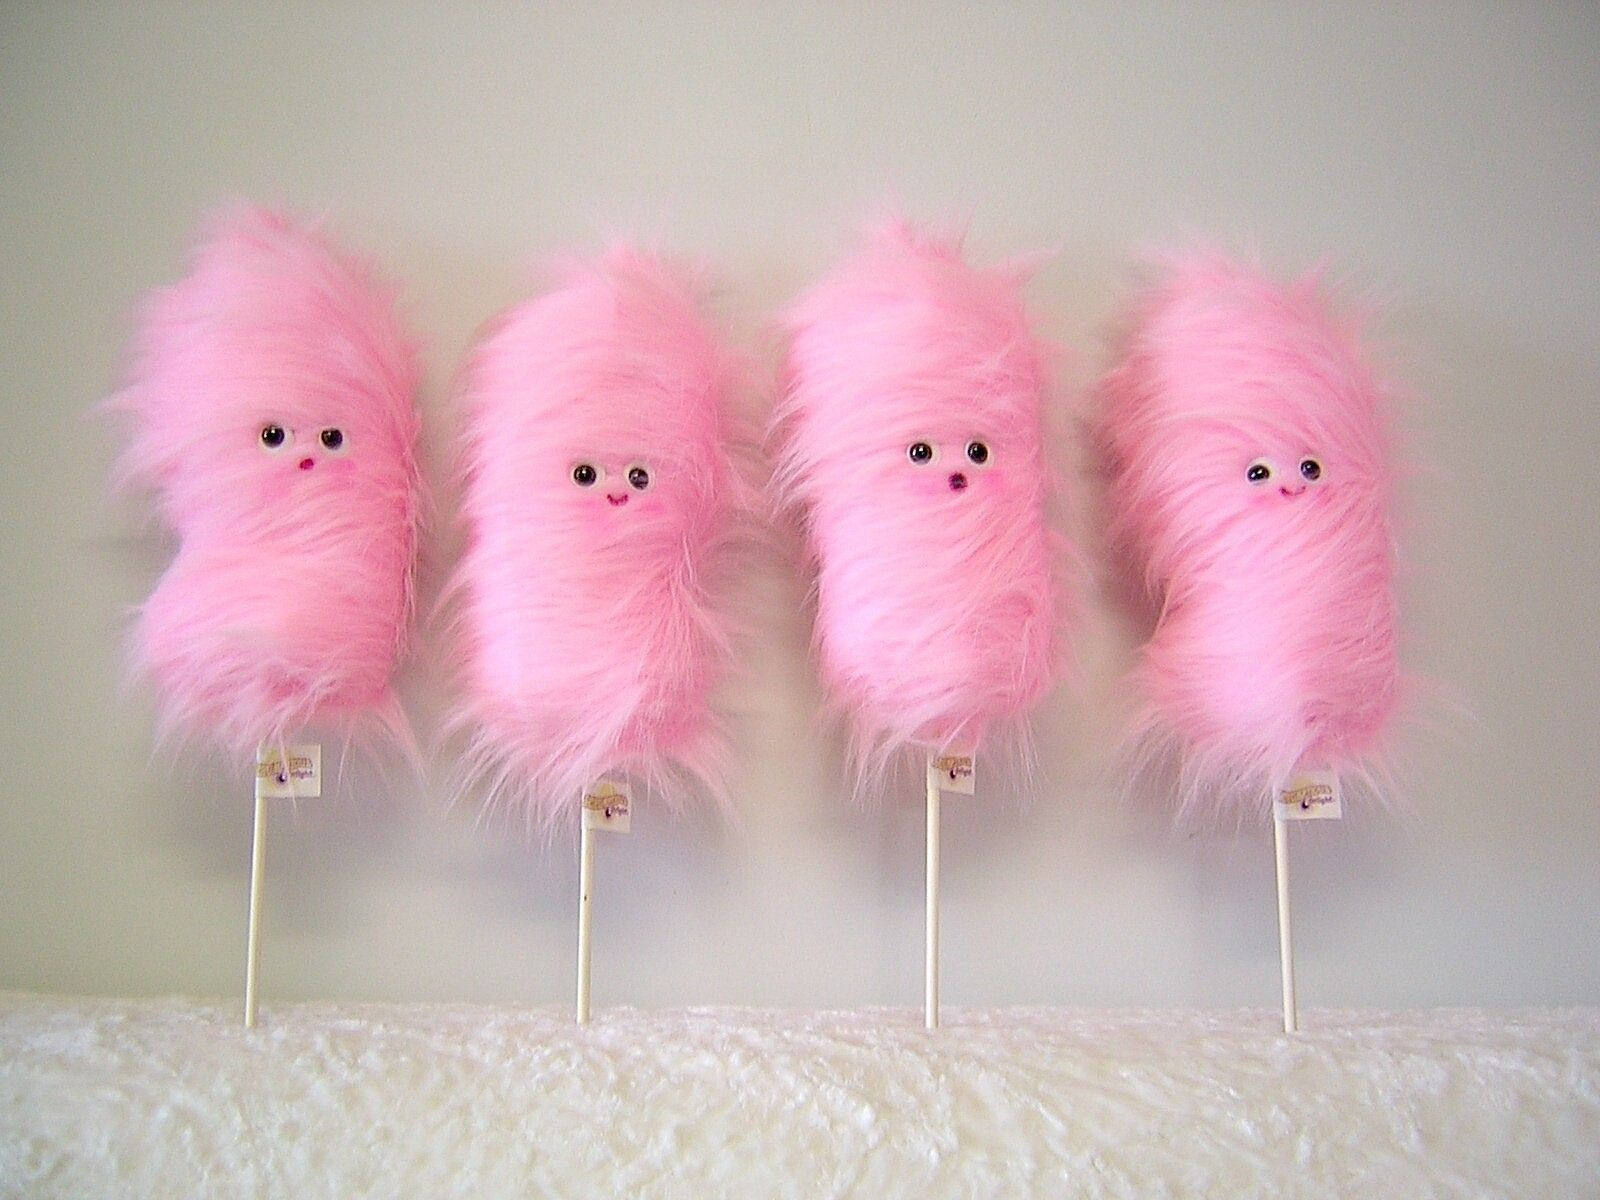 Amazing Cotton Candy Plushies By Scrumptious Delight